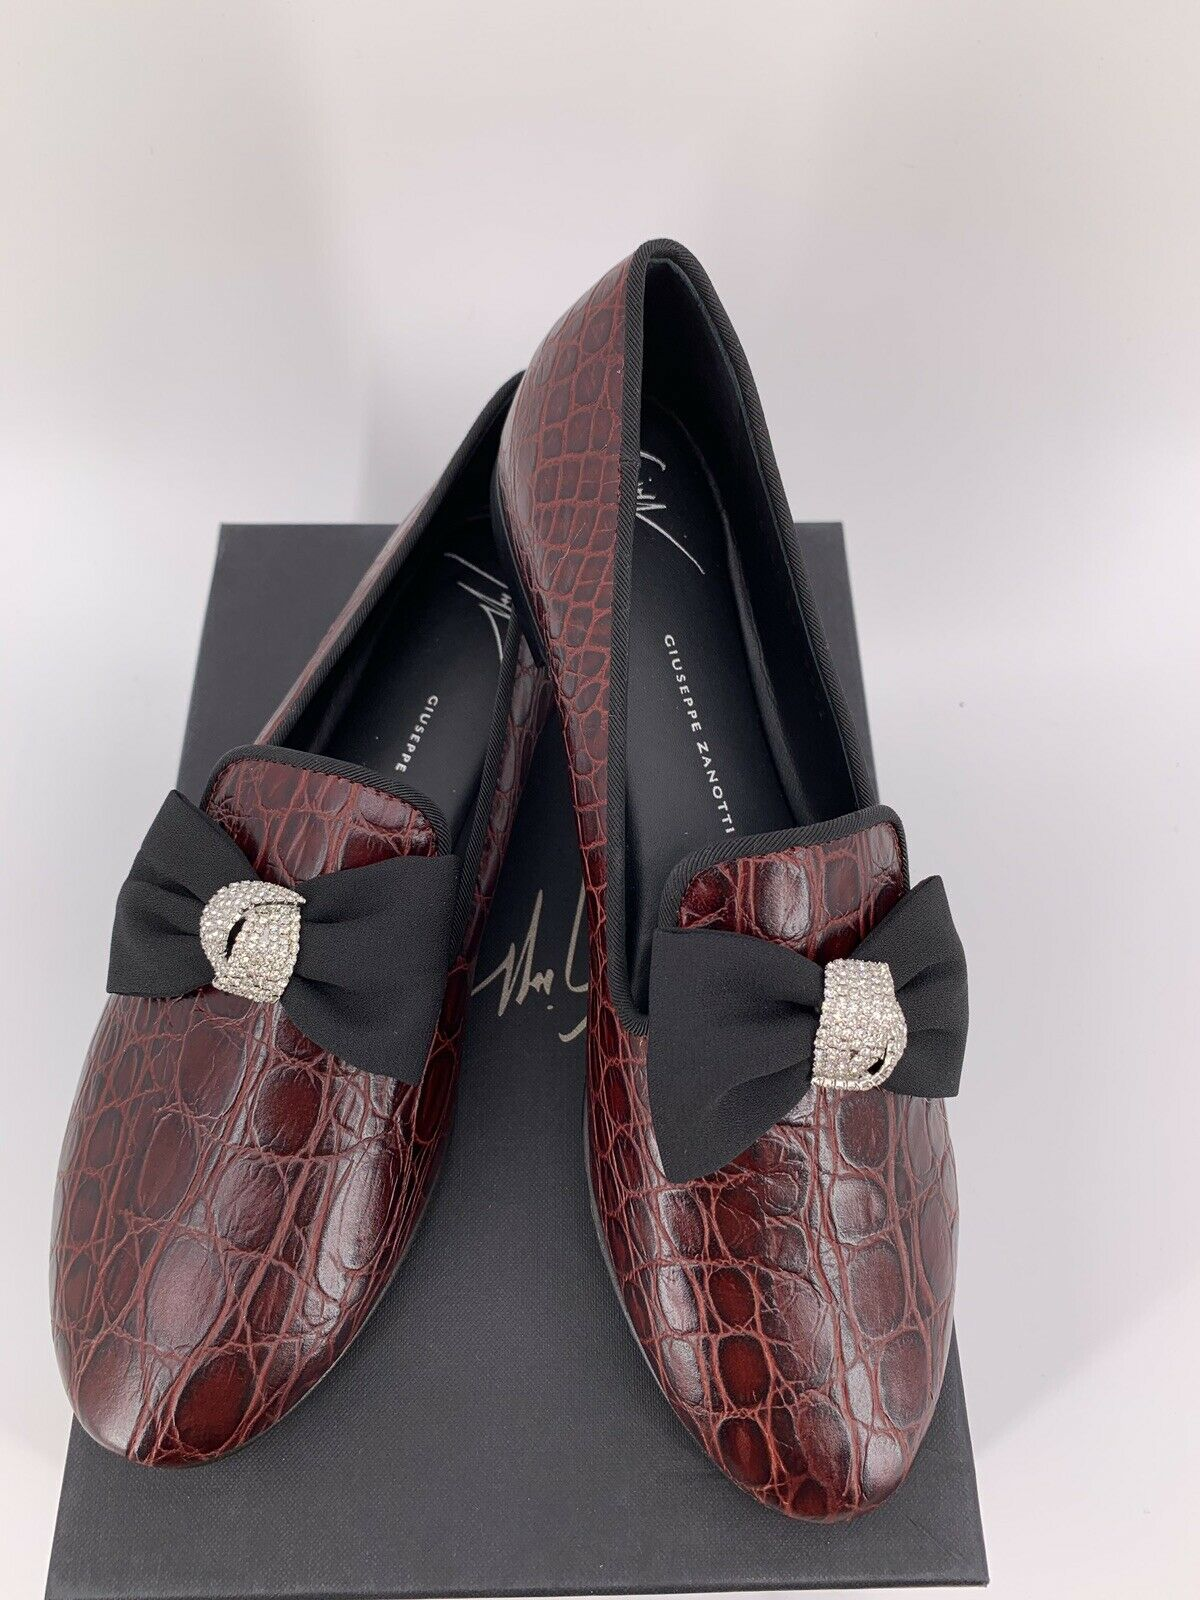 Neu Luxury Original Giuseppe Zanotti Loafers Pumps Damen Gr-39 LP-